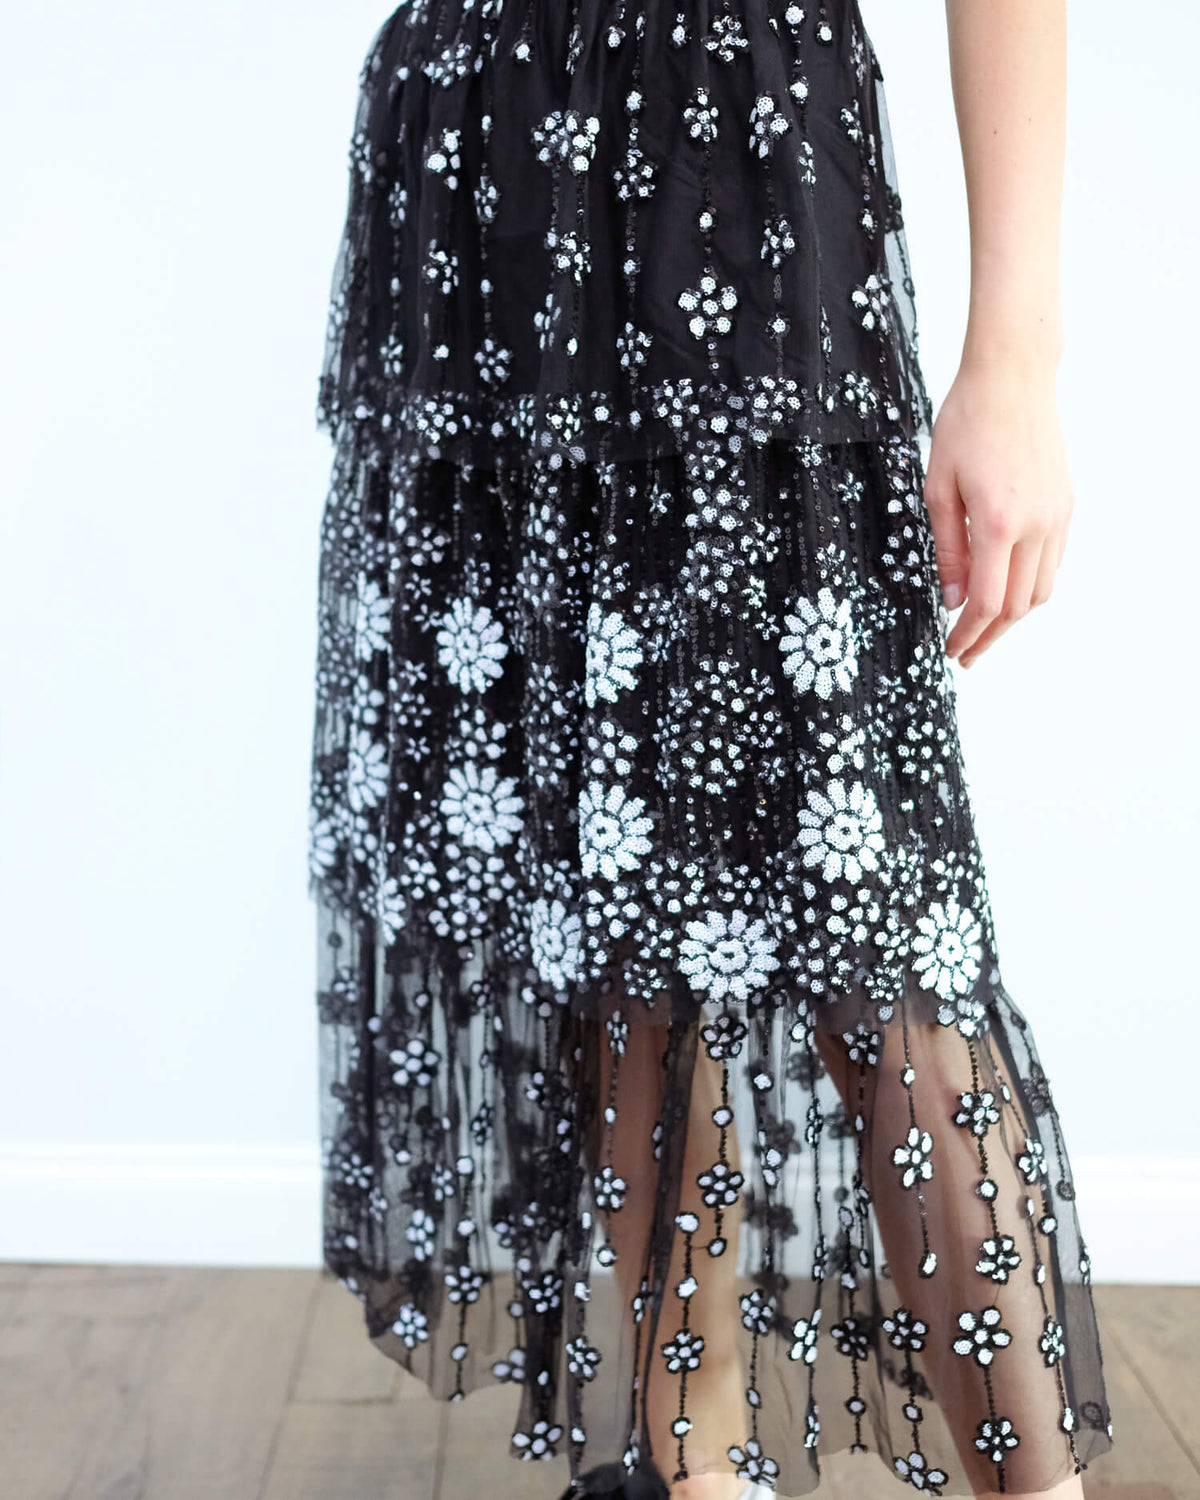 SP Deco sequin tiered midi skirt in black